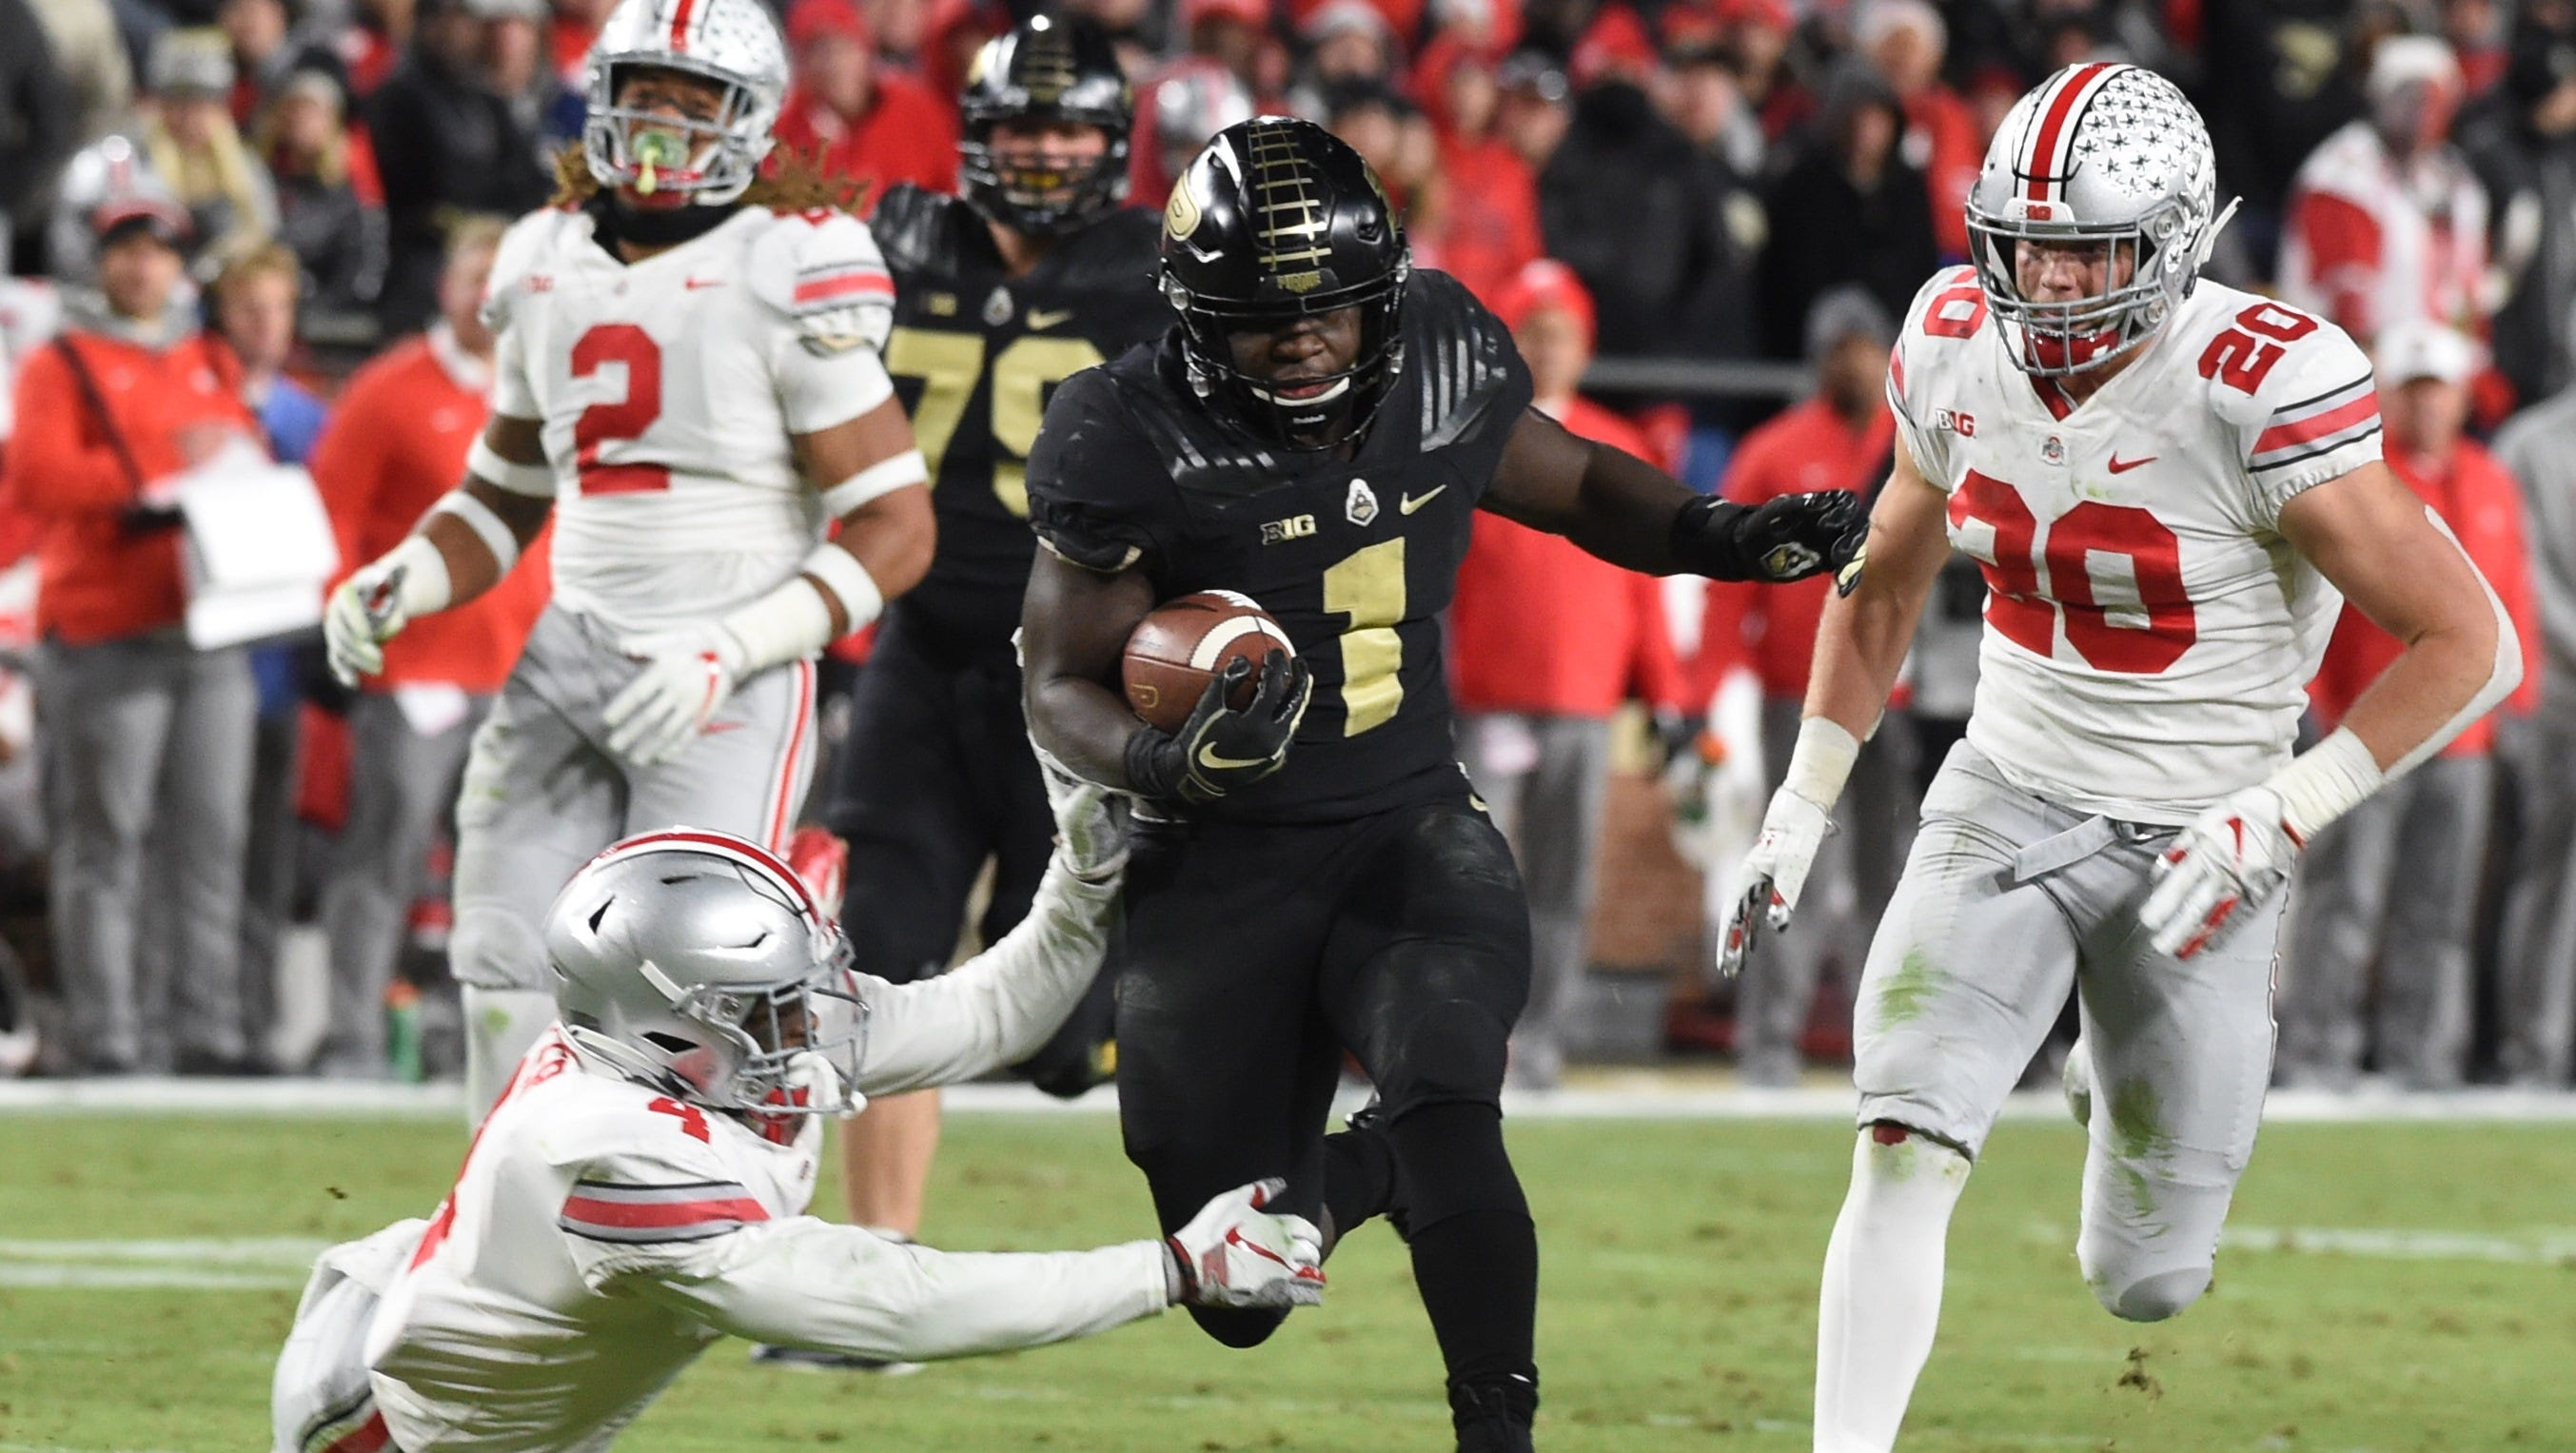 Ohio State Buckeyes Football Routed At Purdue In First Loss Of Season